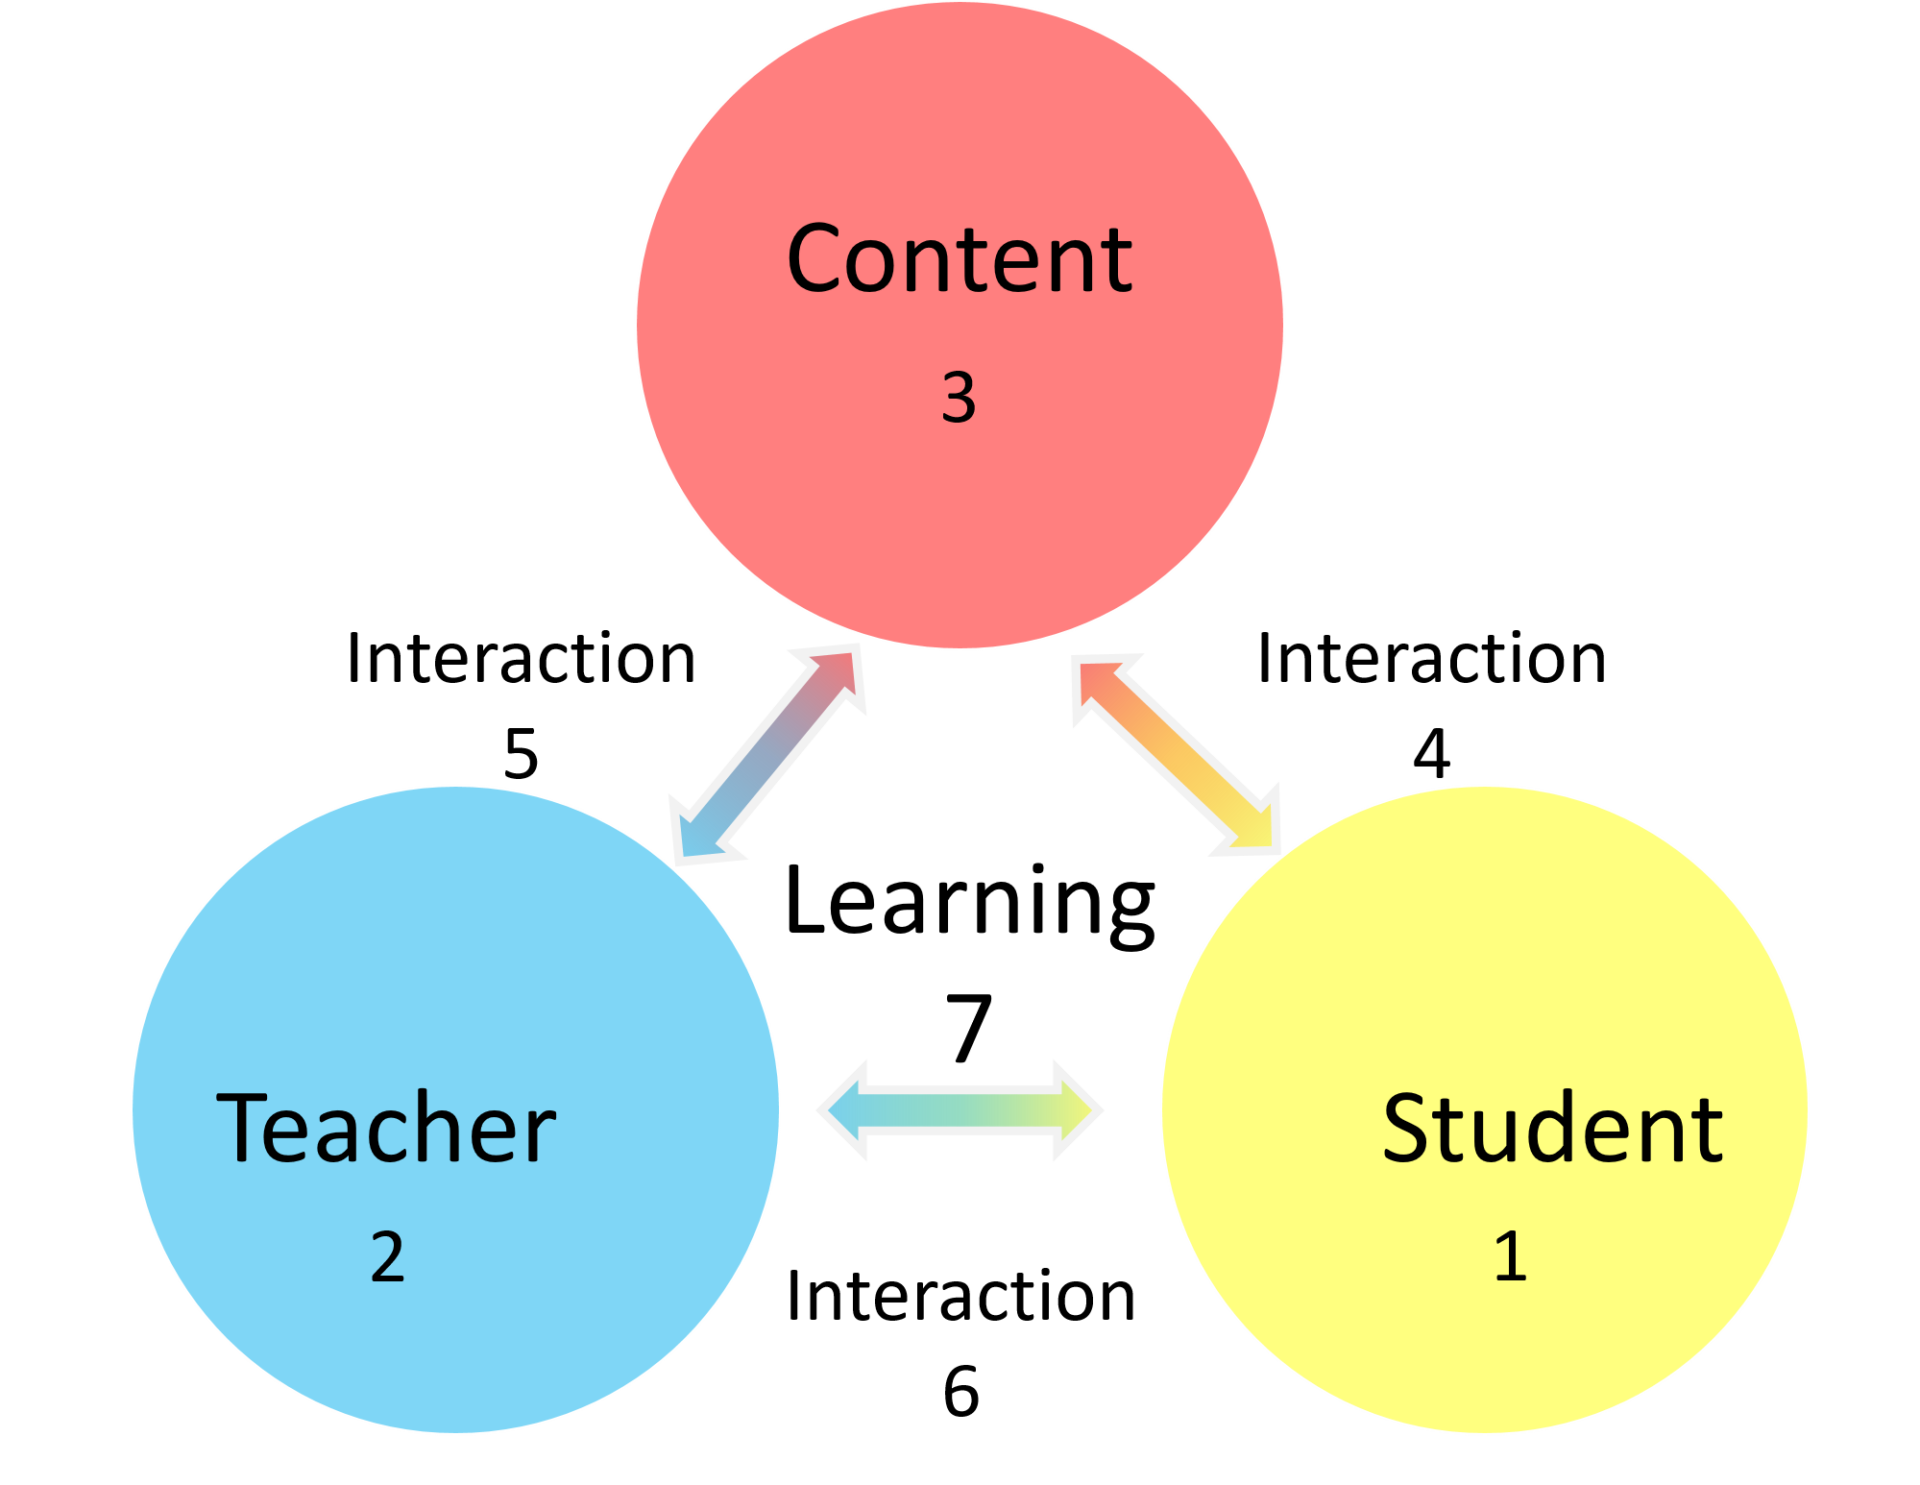 """Graphic Organizer with 3 circles with 3 primal colors and the word """"student, teacher, and content"""" inside them. 3 double-headed arrows with the word interaction connect them. The word learning is in the center."""